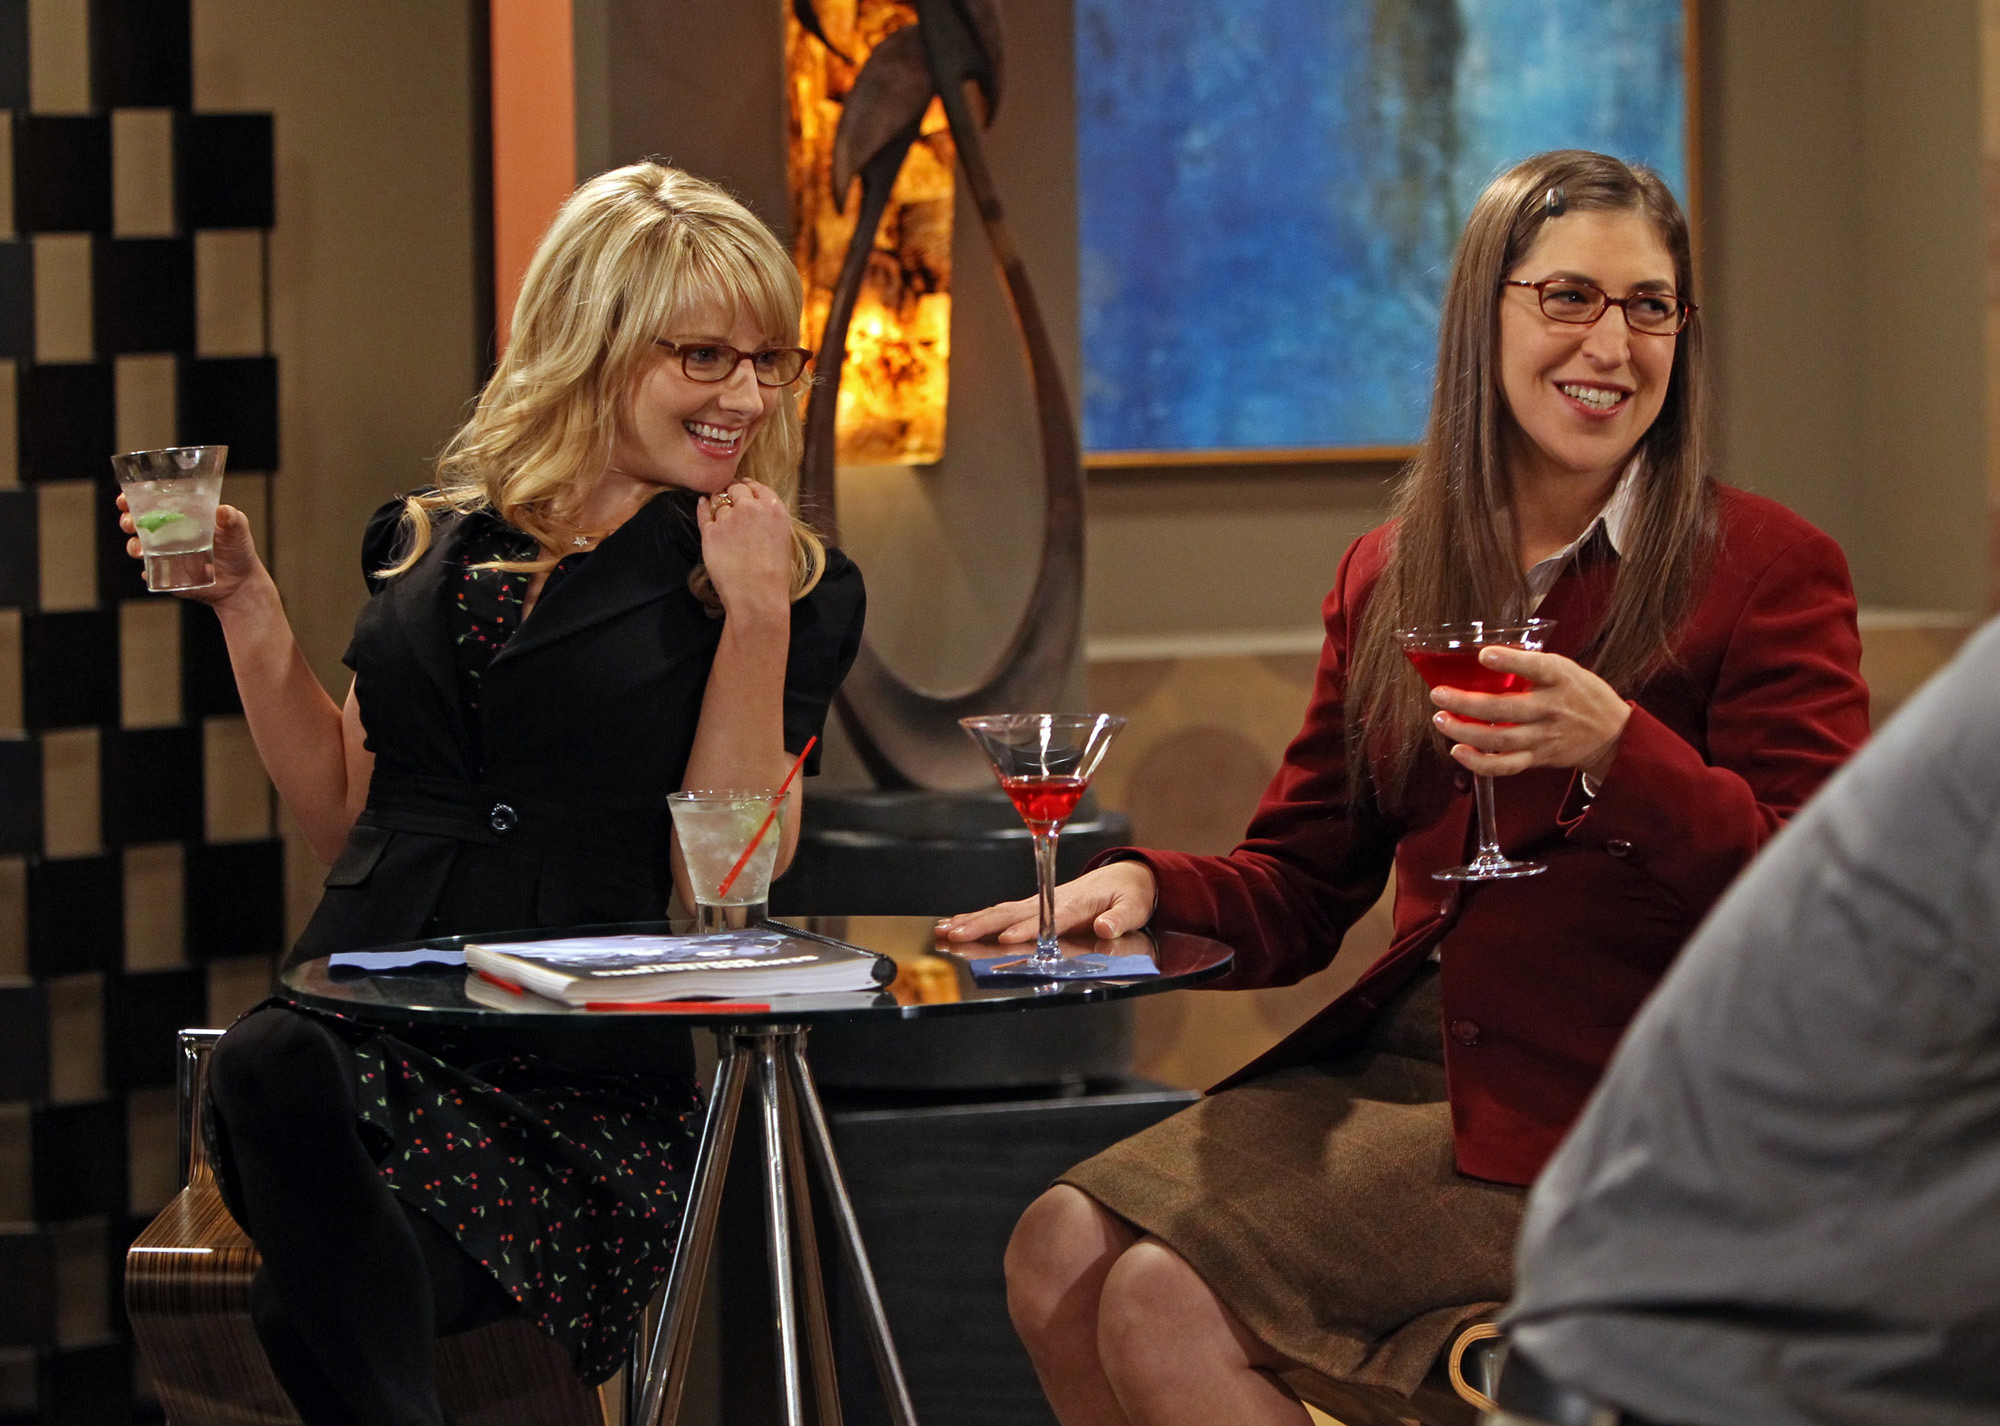 10. Bernadette and Amy - The Big Bang Theory